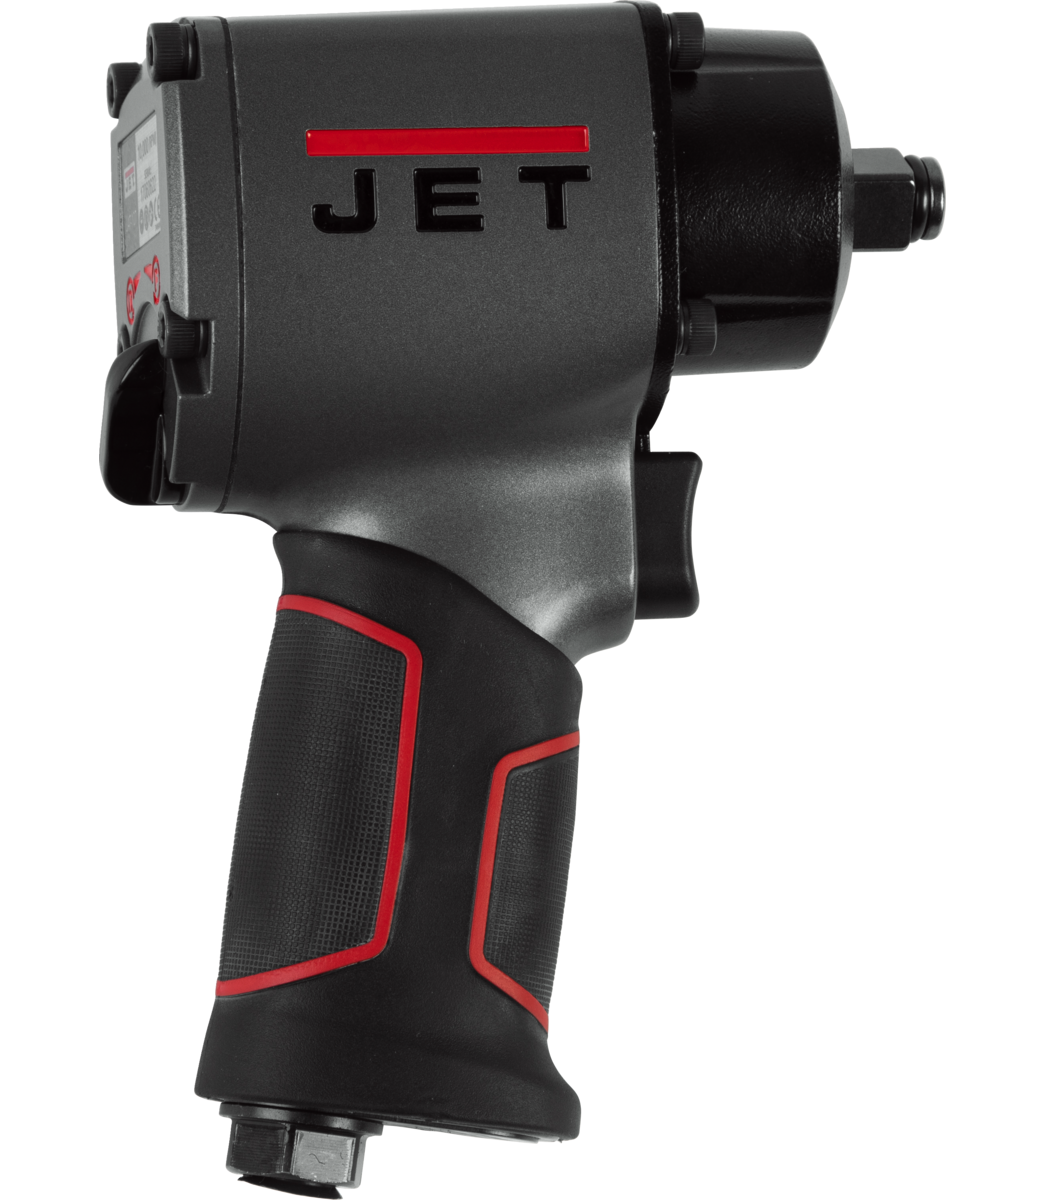 """JAT-107, 1/2"""" Compact Impact Wrench"""